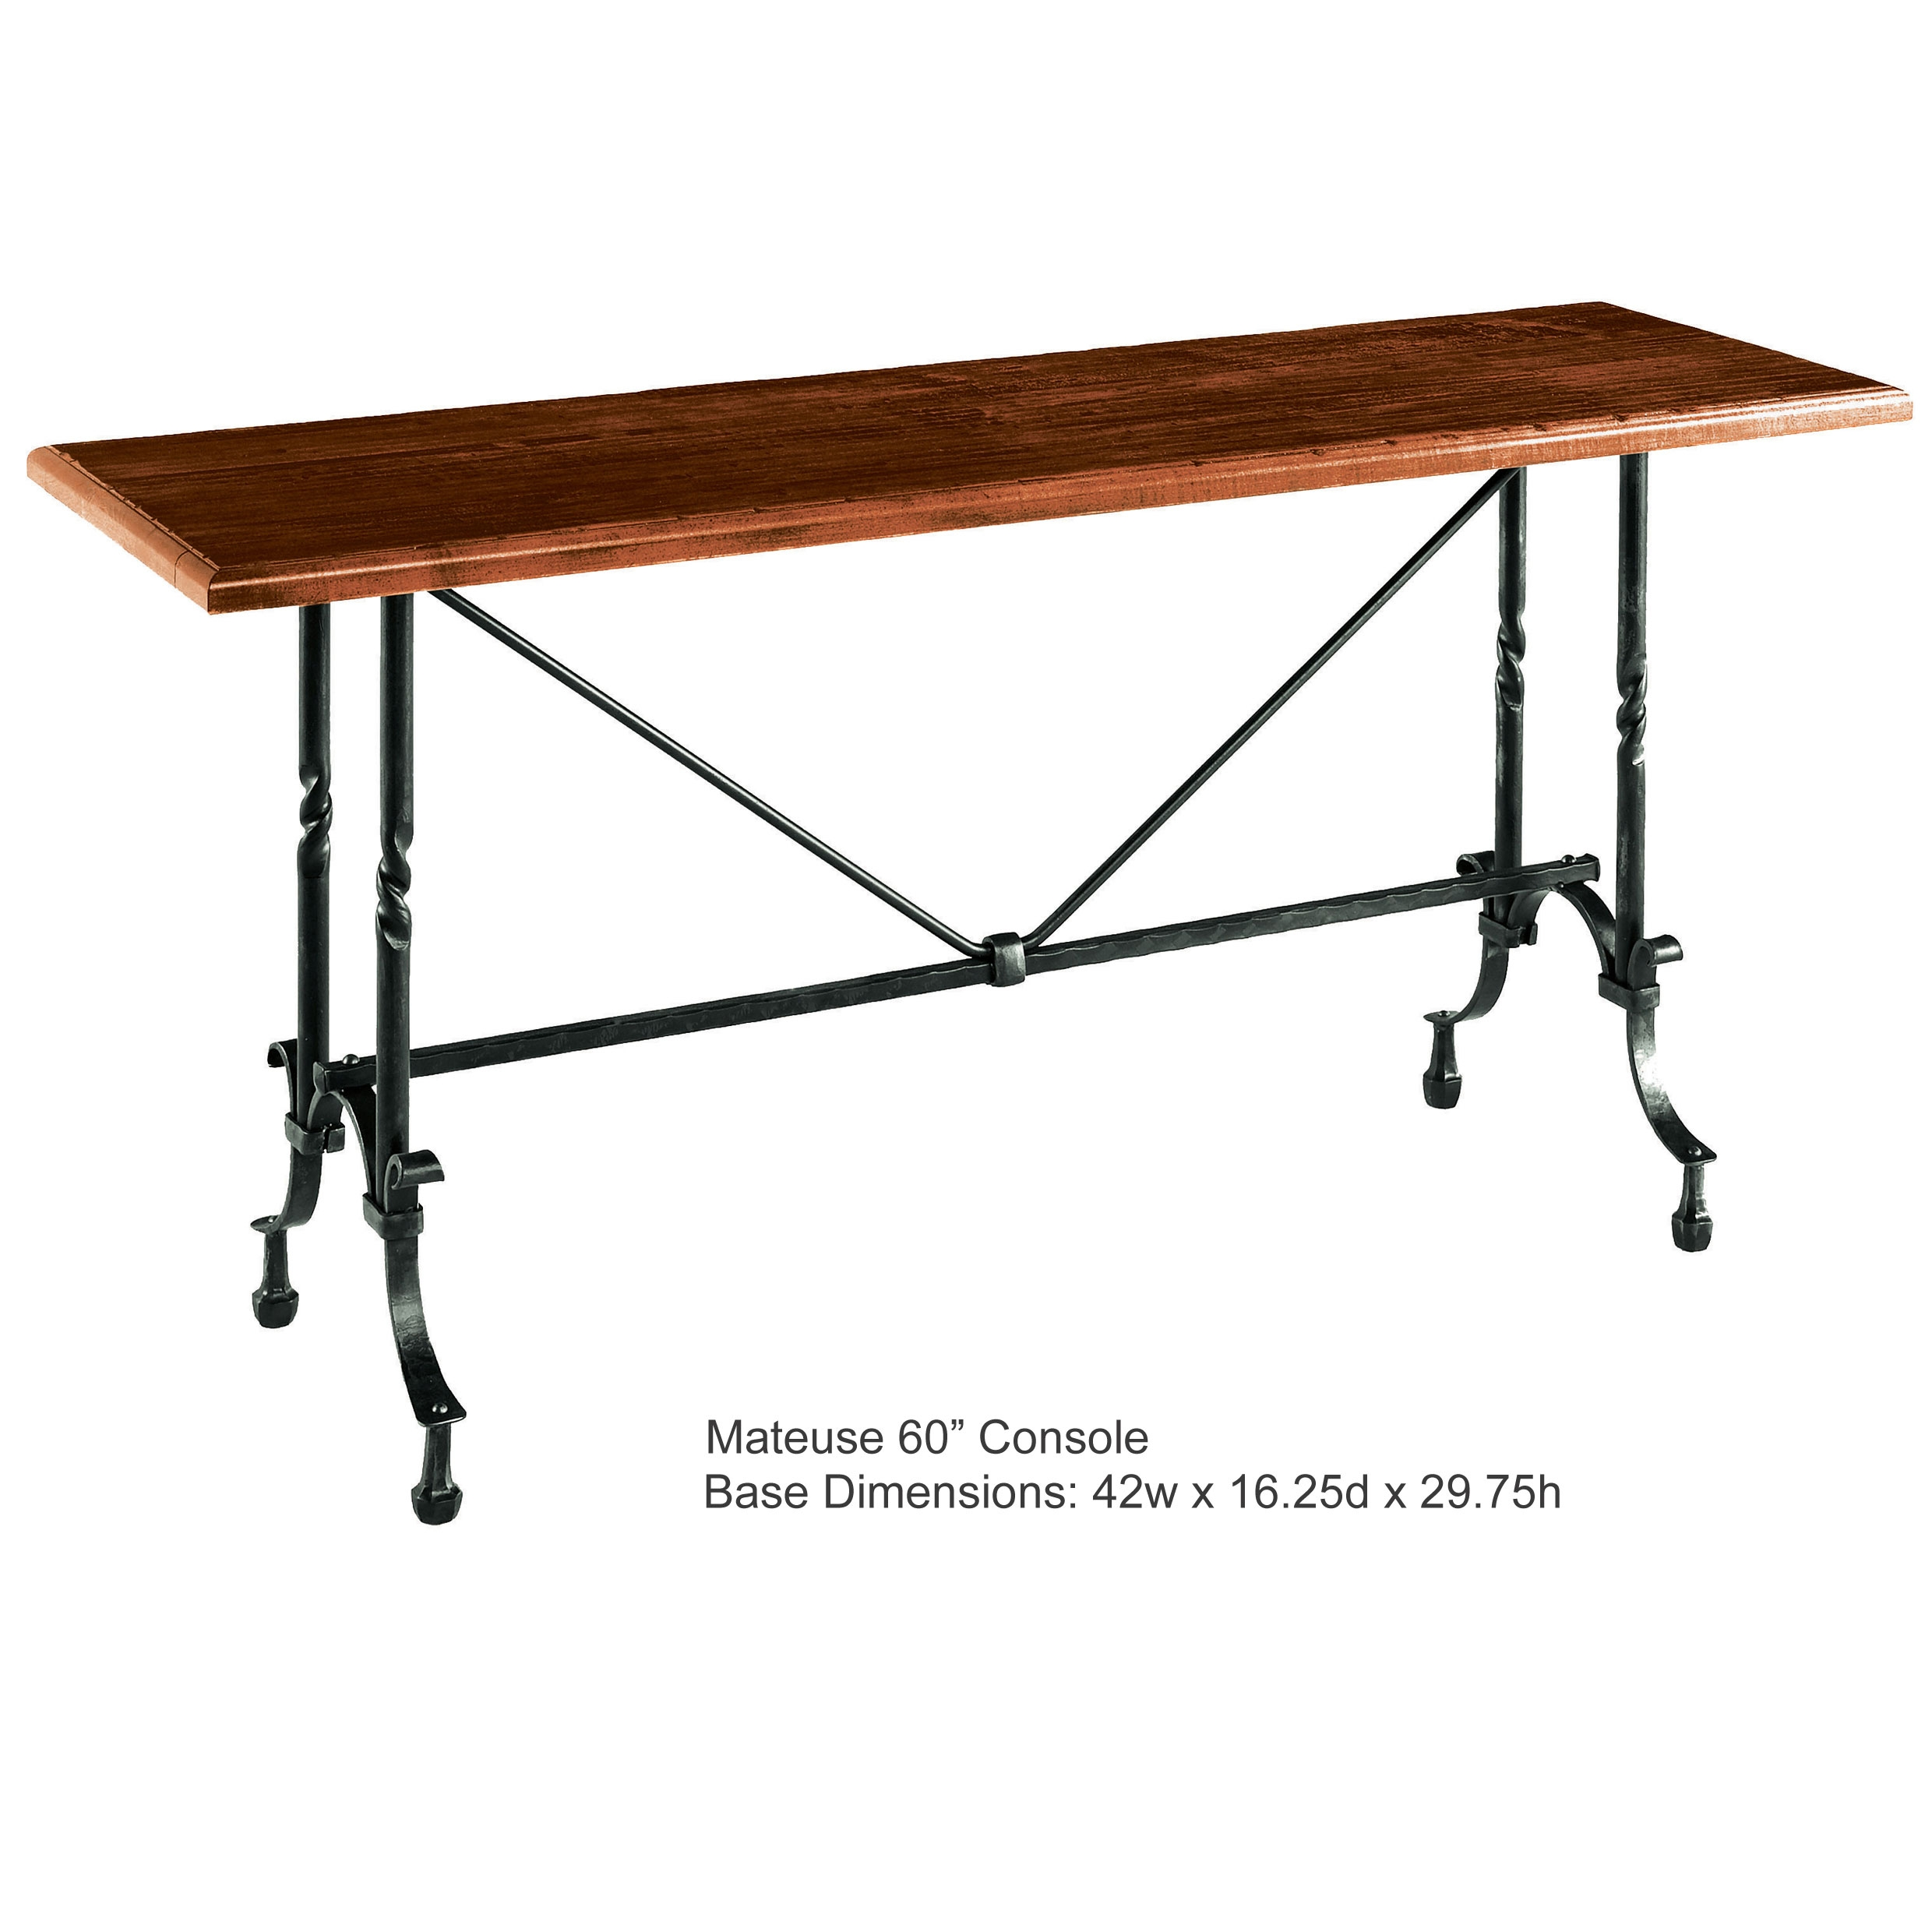 Pictured Is The Charleston Forge Manufactured Mateuse Console Table That  Measures 60 In X 16.25